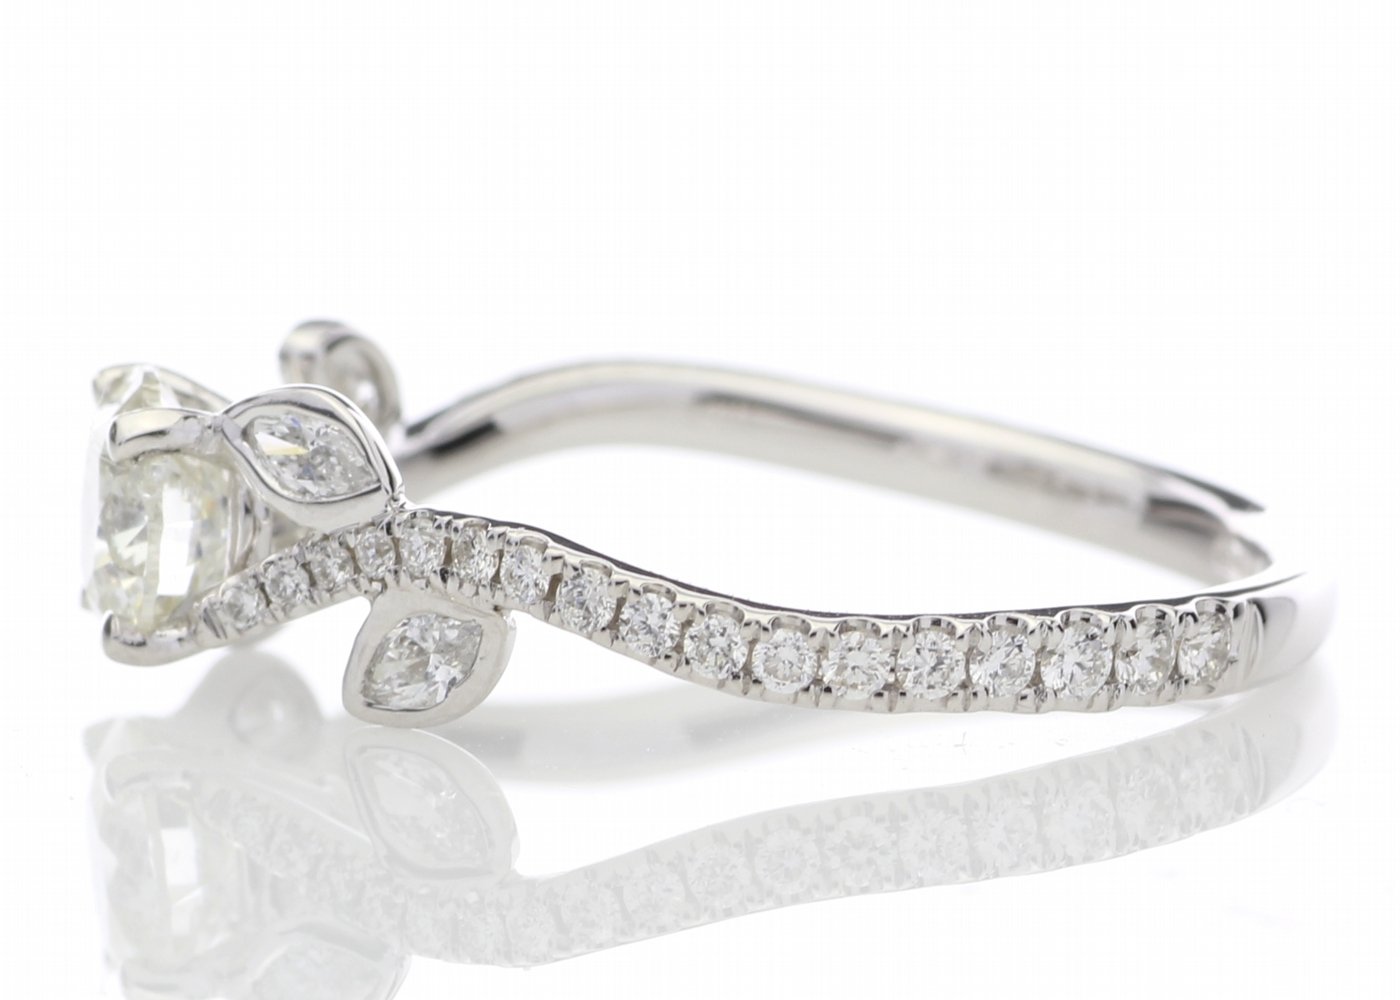 18ct White Gold Single Stone Diamond Ring With Stone Set Shoulders (0.55) 0.91 Carats - Image 3 of 5